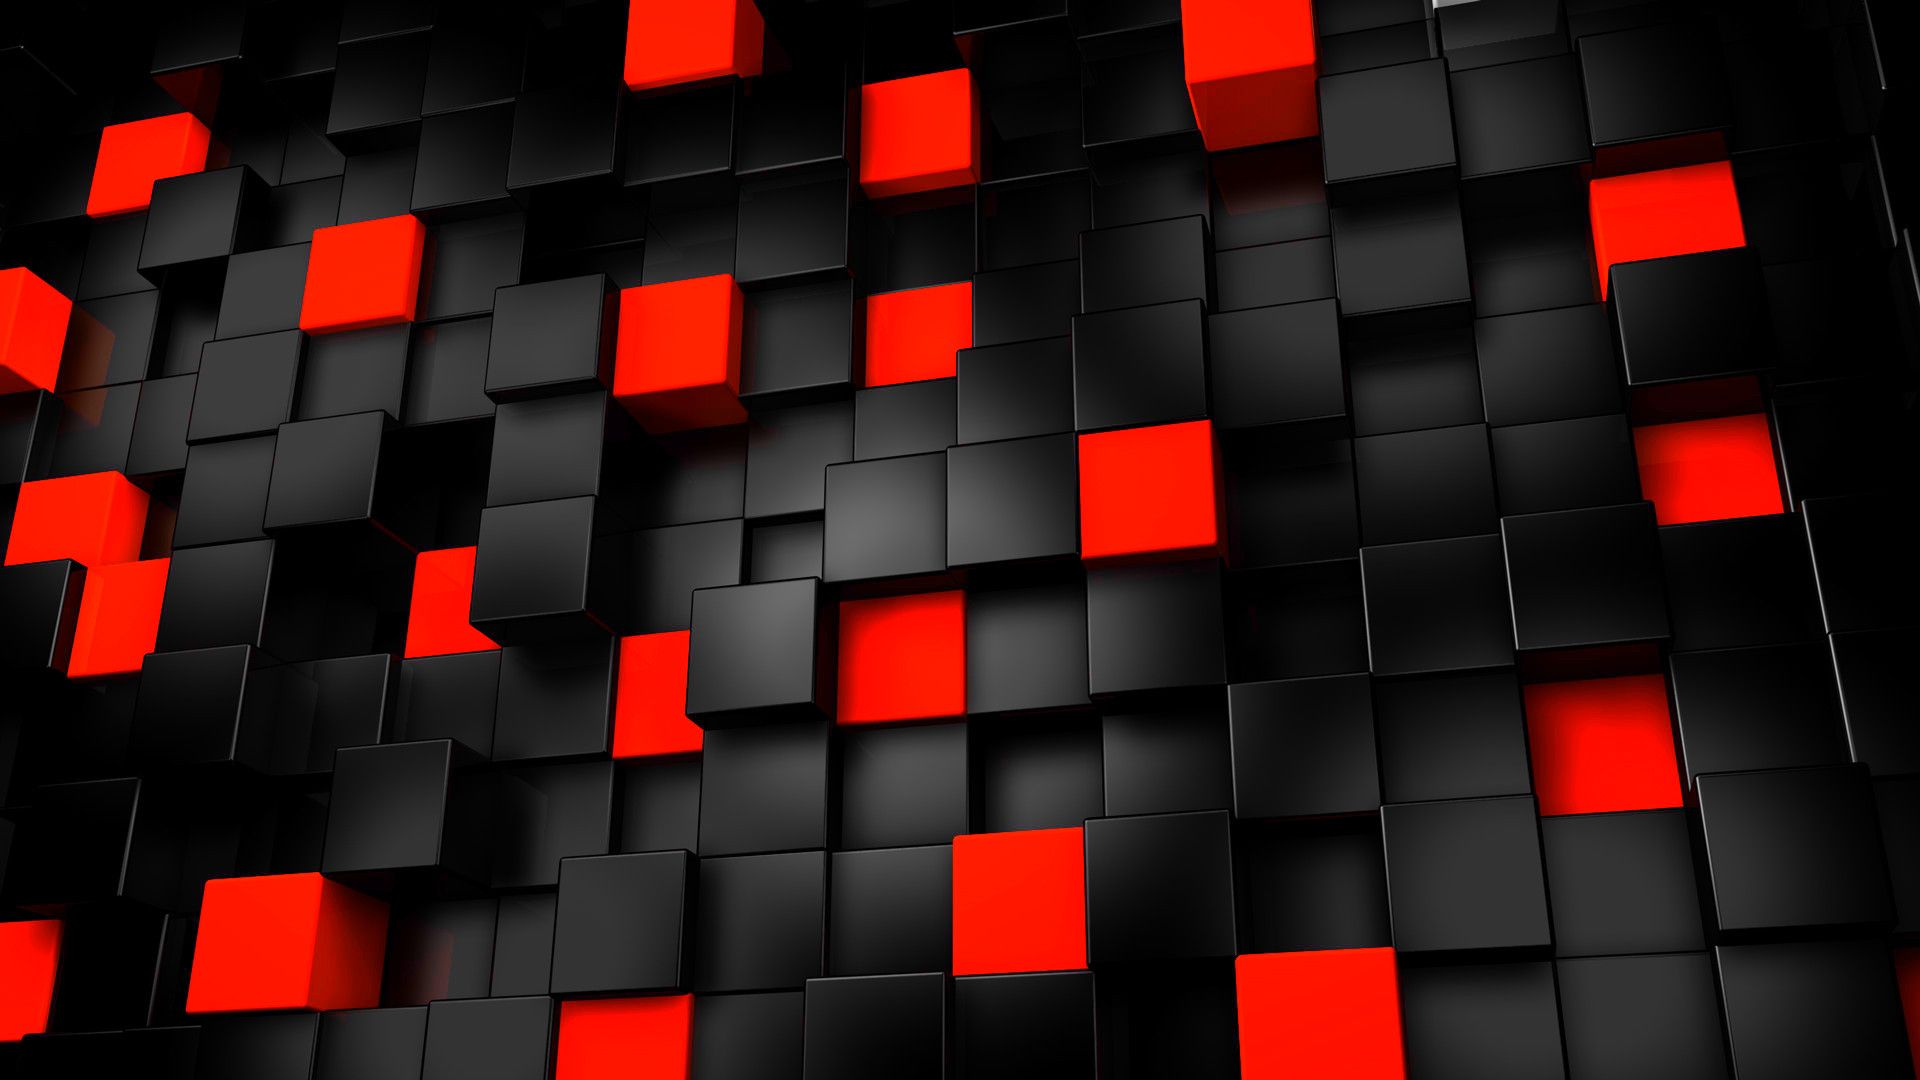 Hd wallpaper red and black - Hd Black And Red Abstract 3d 1080p Wallpaper Full Size